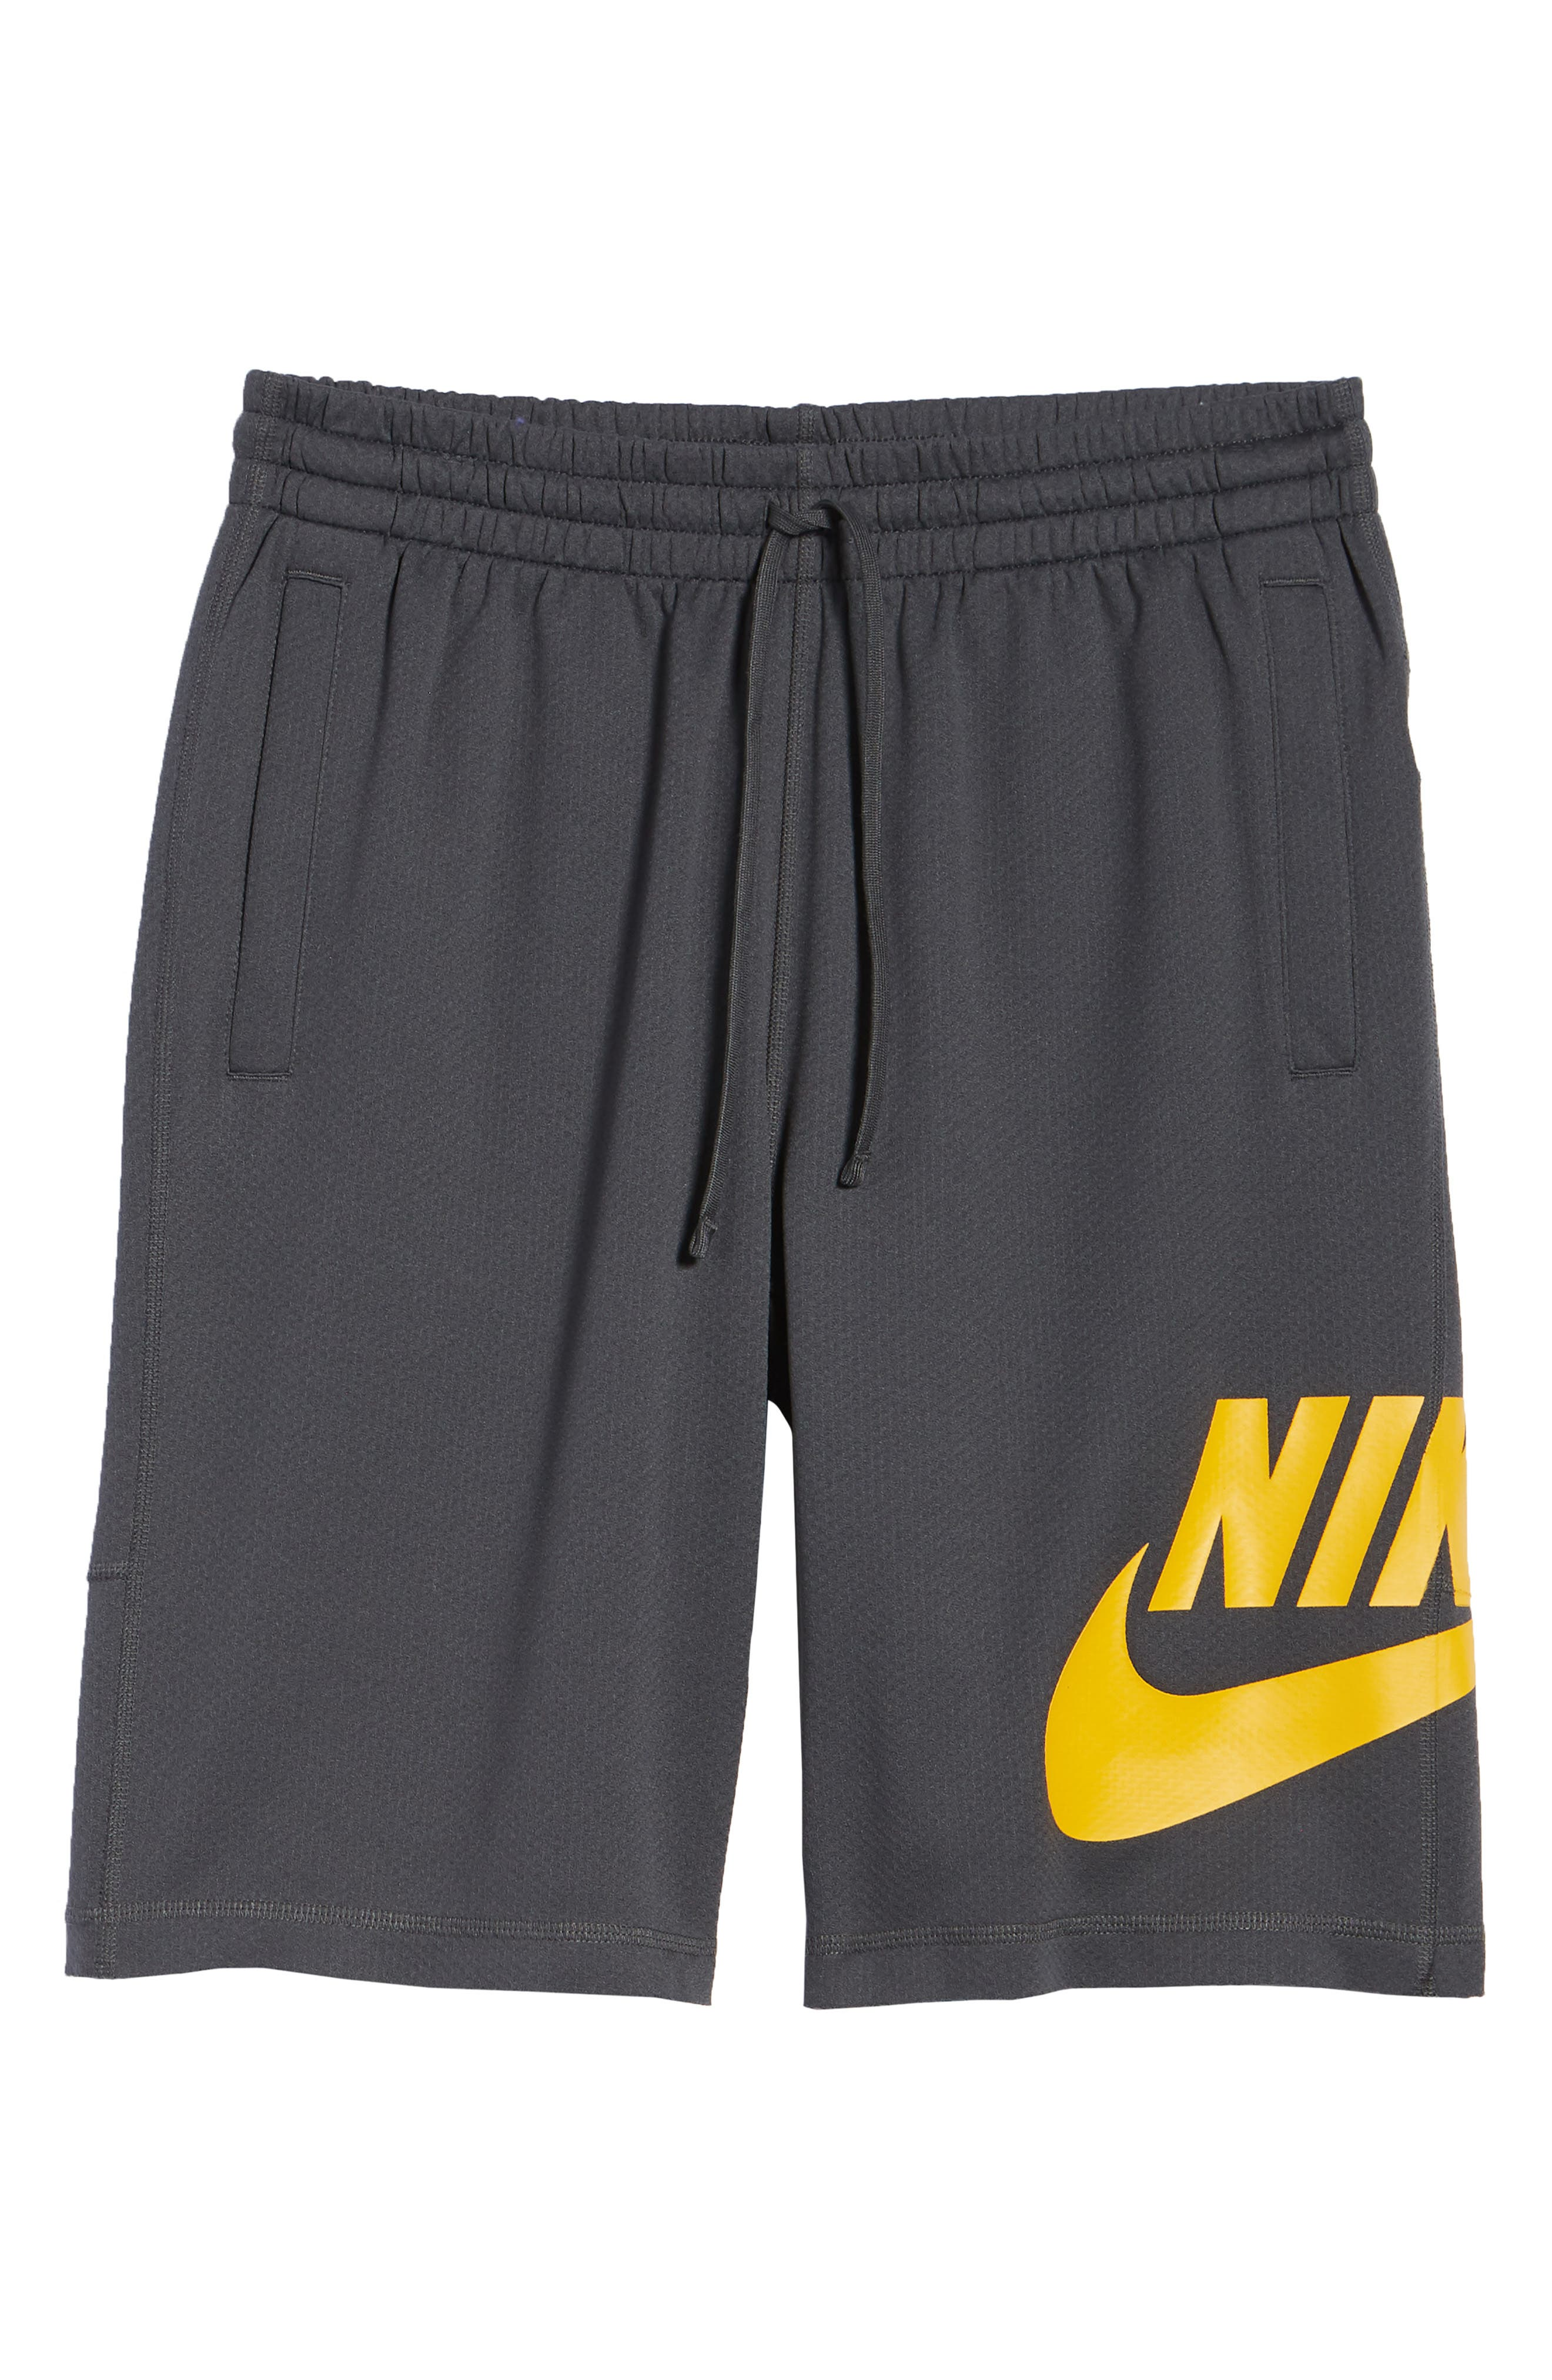 Sunday Dri-FIT Shorts,                             Alternate thumbnail 6, color,                             ANTHRACITE/ YELLOW OCHRE